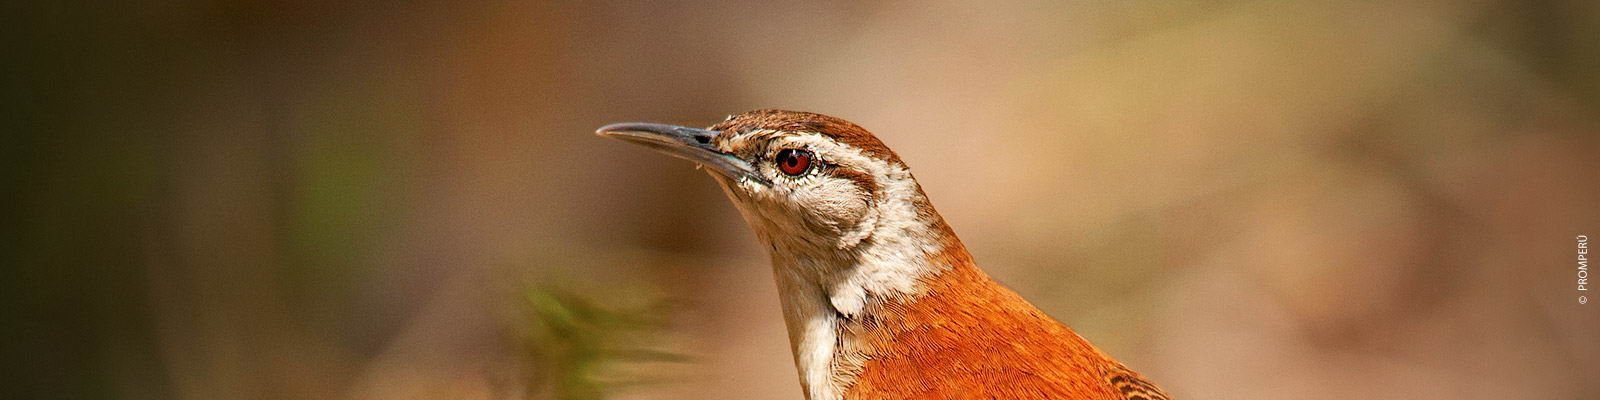 Birdwatching superciliated wren